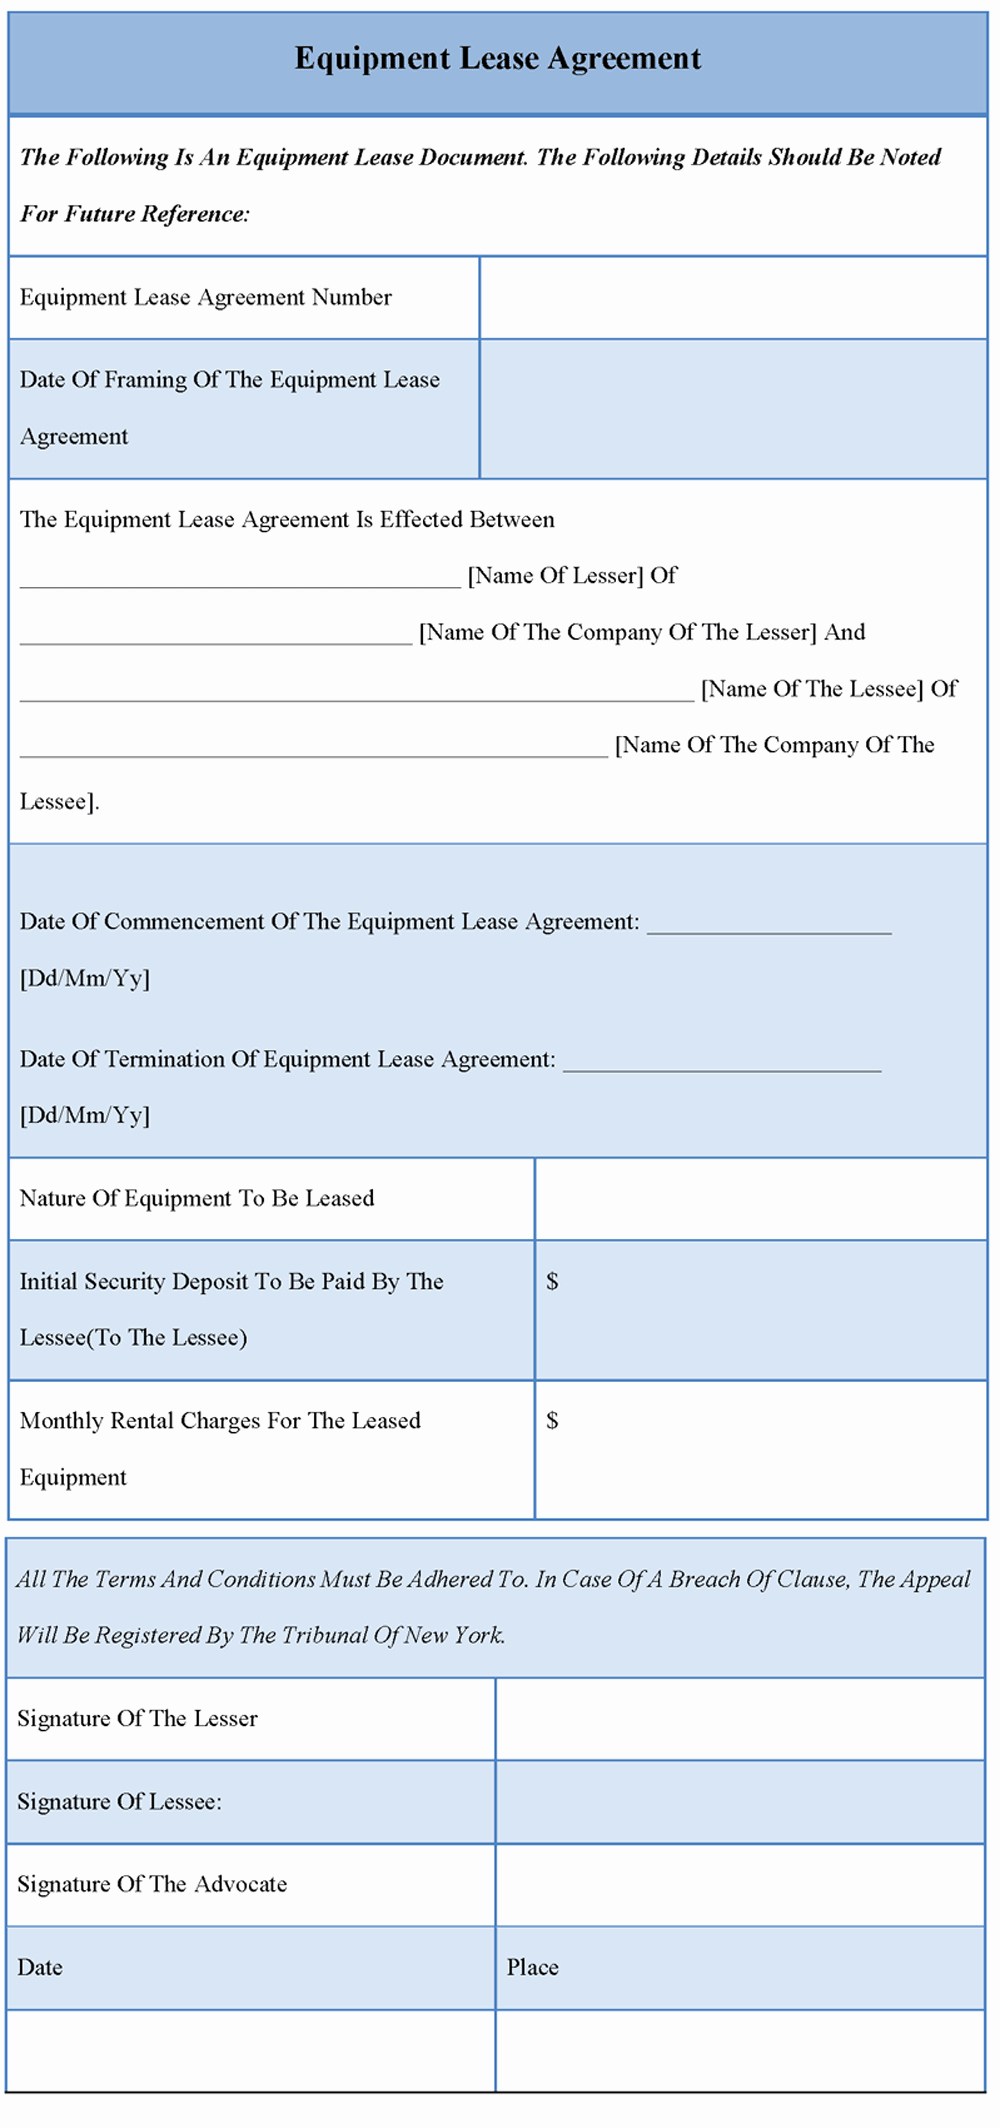 Equipment Lease Agreement Template Awesome Agreement Template for Equipment Lease format Of Equipment